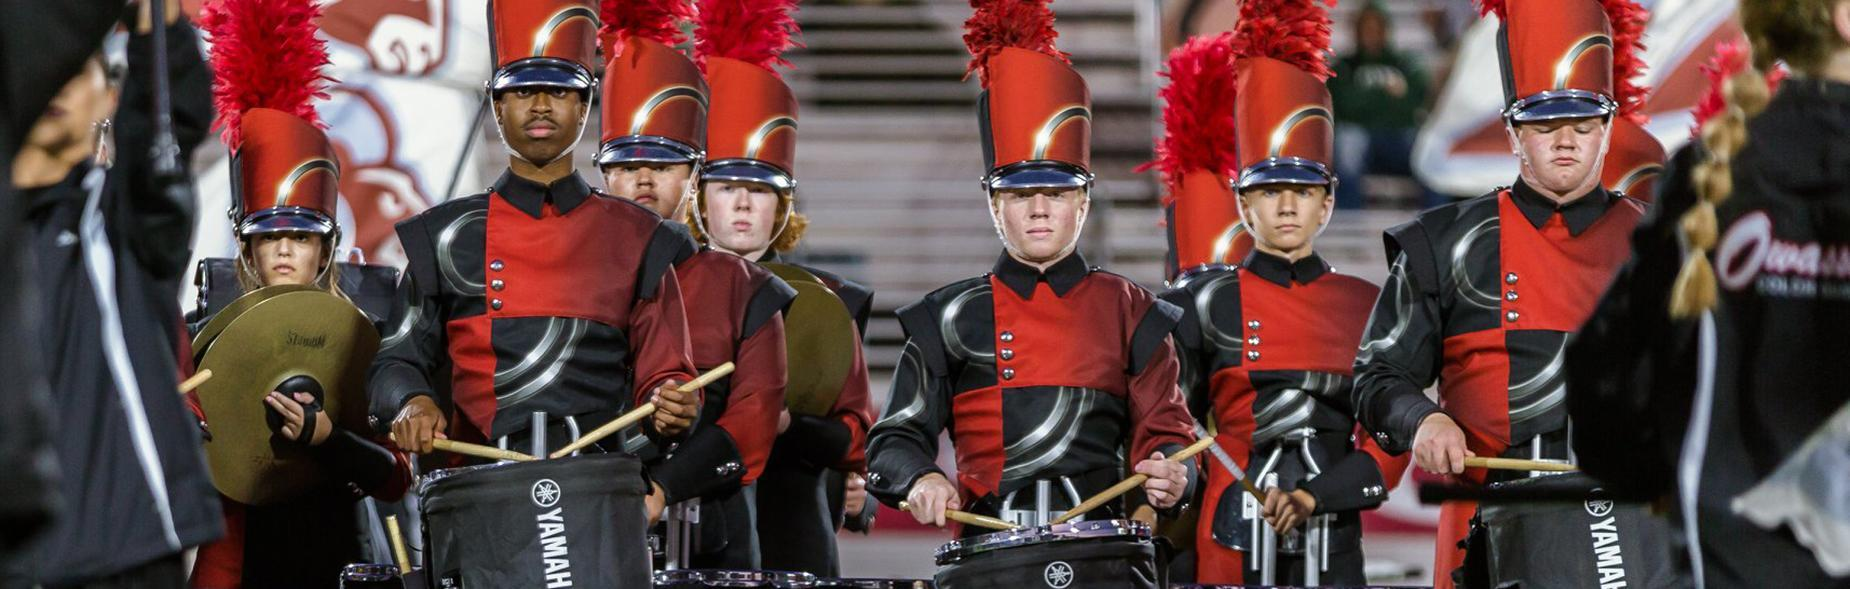 Pride of Owasso Marching Band drummers.